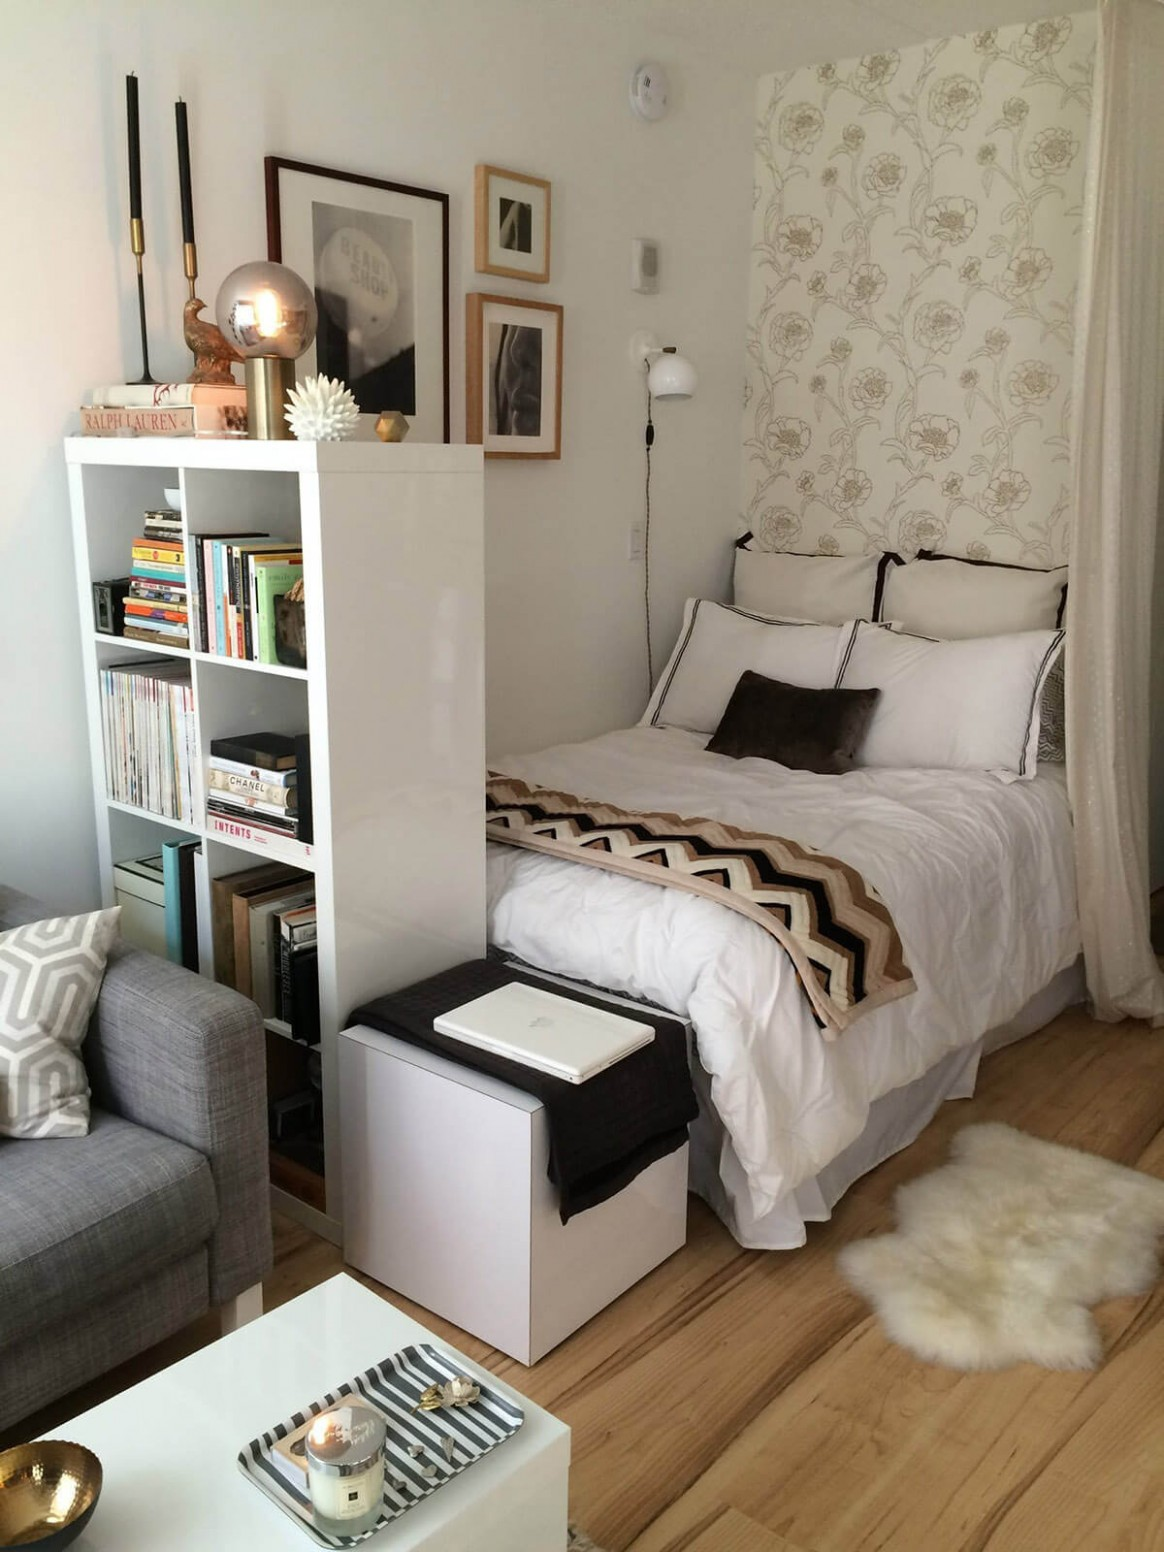 9 Best Small Bedroom Ideas and Designs for 9 - Bedroom Ideas Small